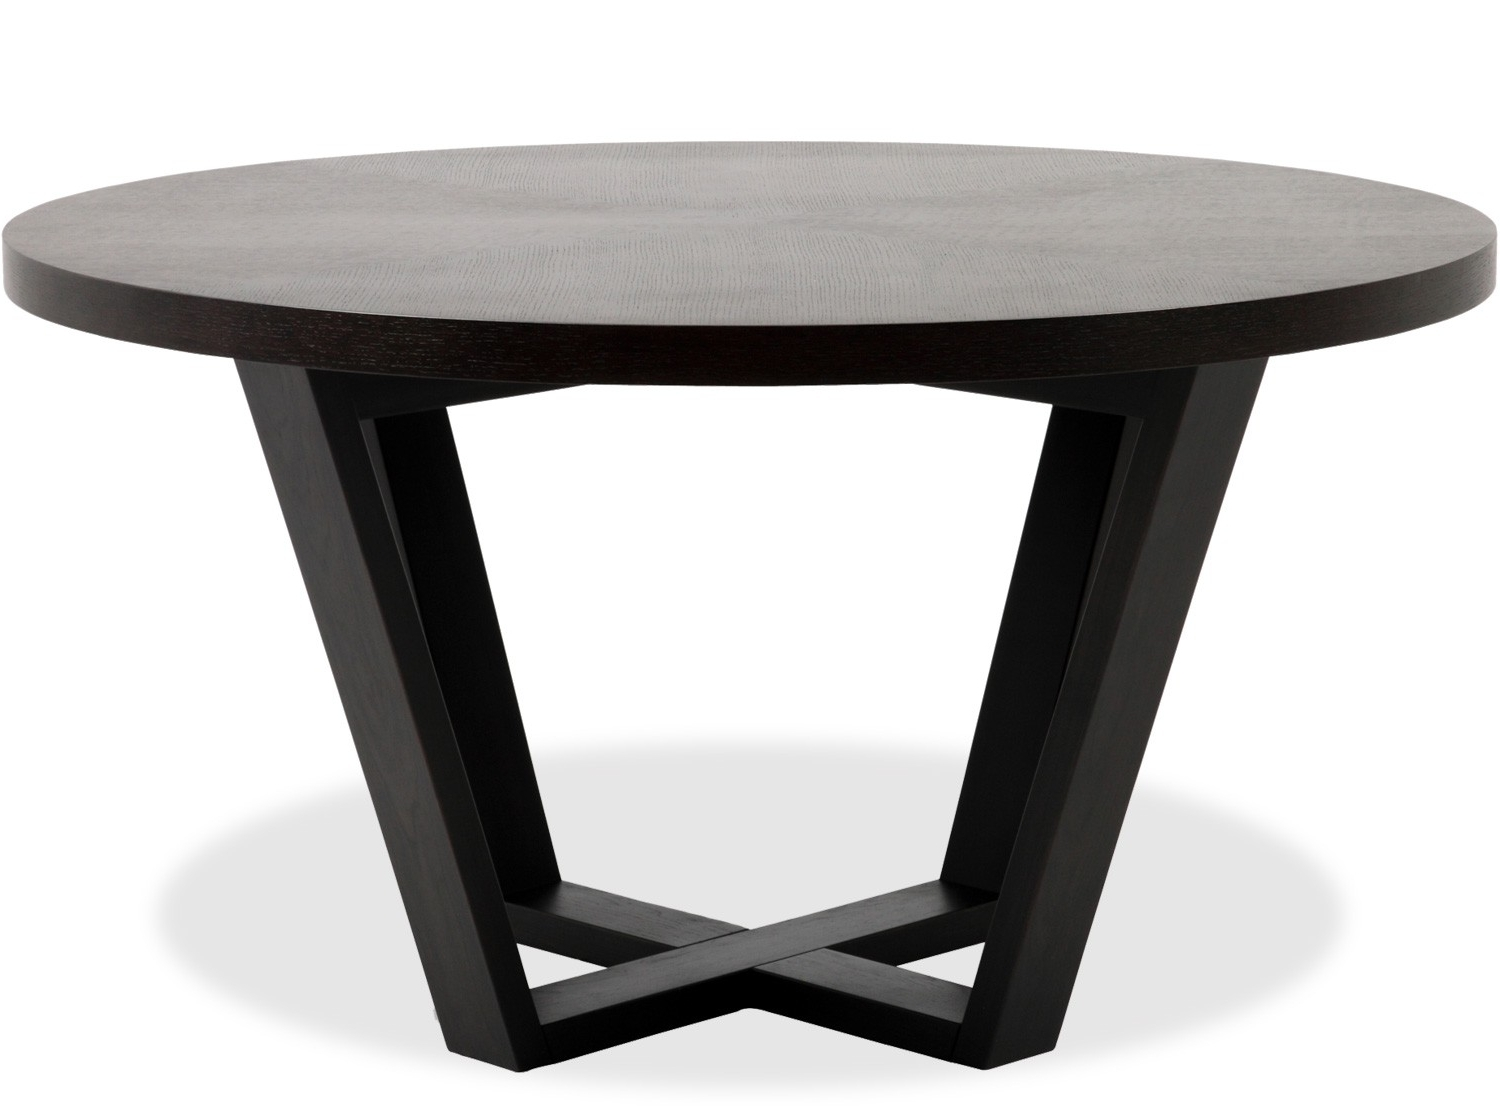 Dark Round Dining Tables Regarding Popular Dining Tables: Outstanding Round Black Dining Table Black Table (View 7 of 25)